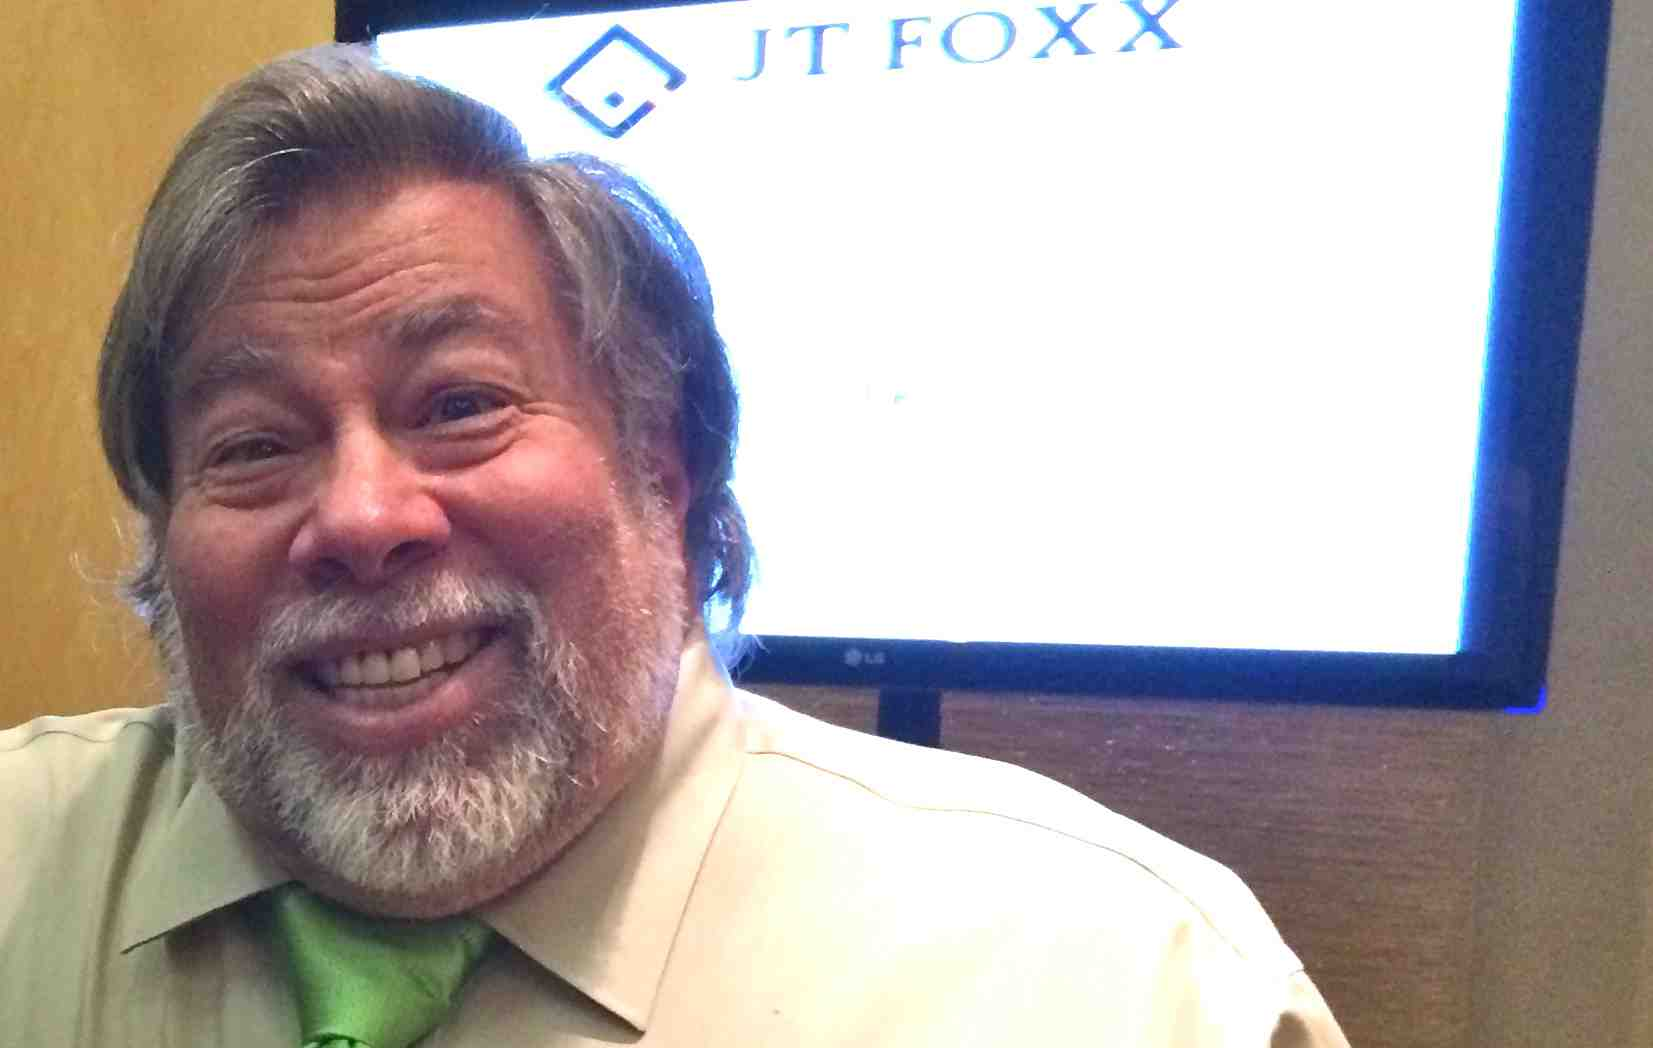 Steve Wozniak on new Steve Jobs movie: It's pure Hollywood fiction